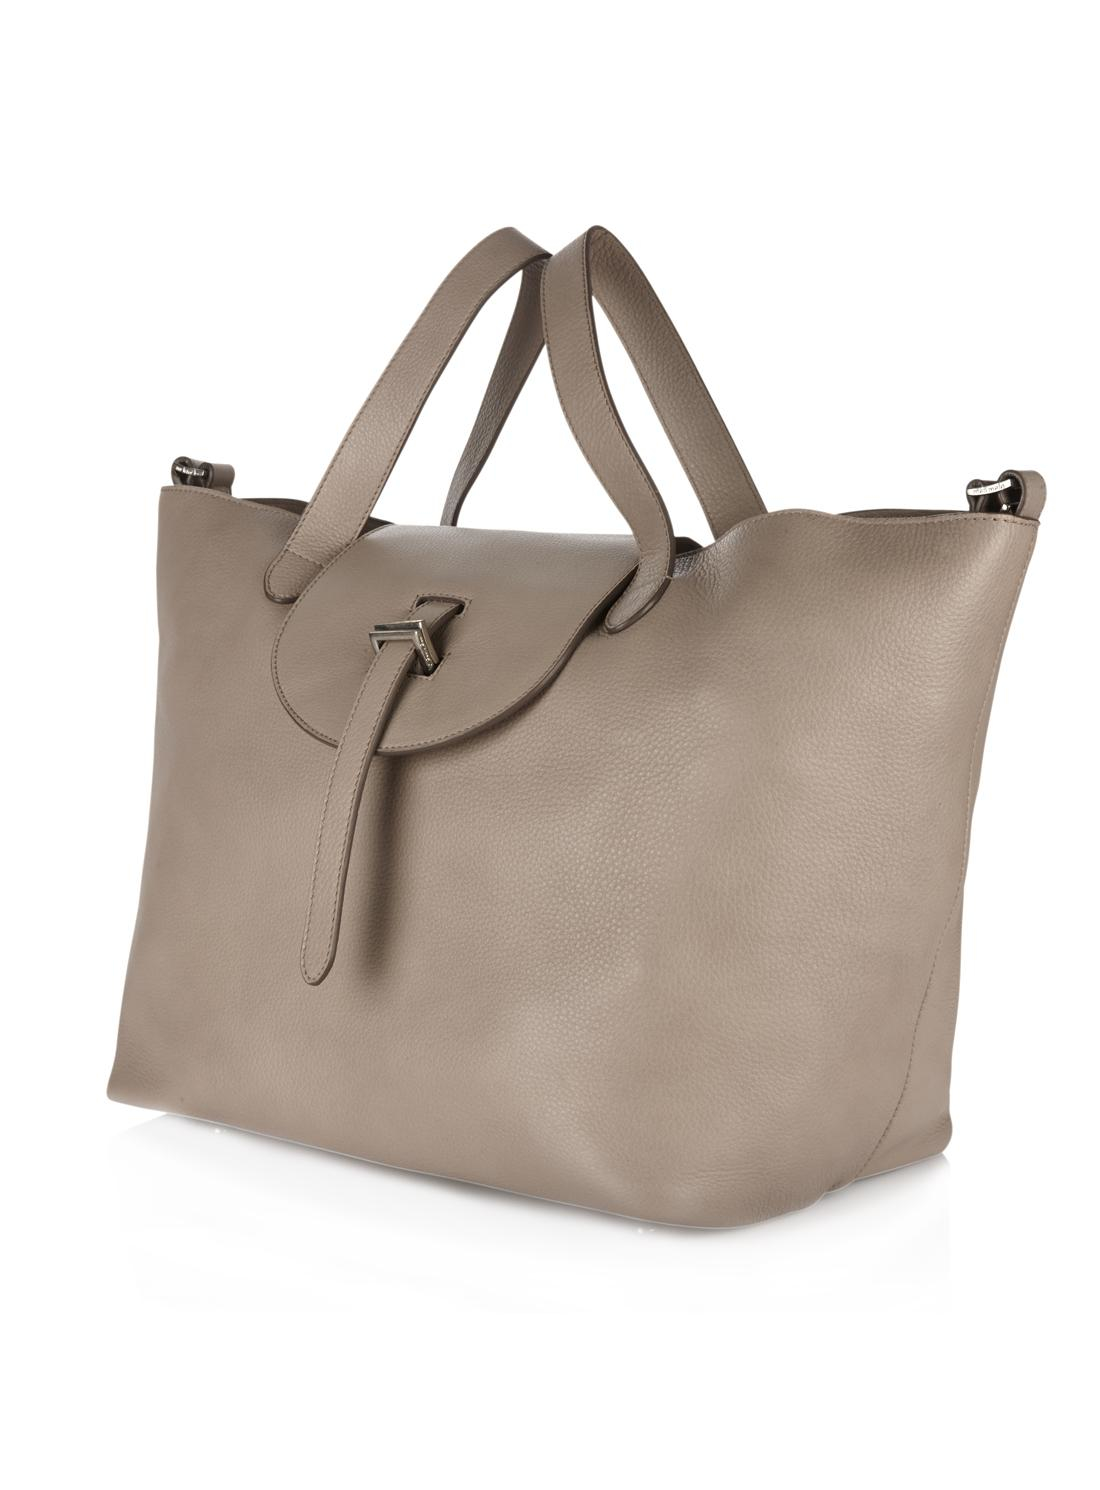 Meli melo Thela Classic Tote Bag In Taupe in Brown | Lyst